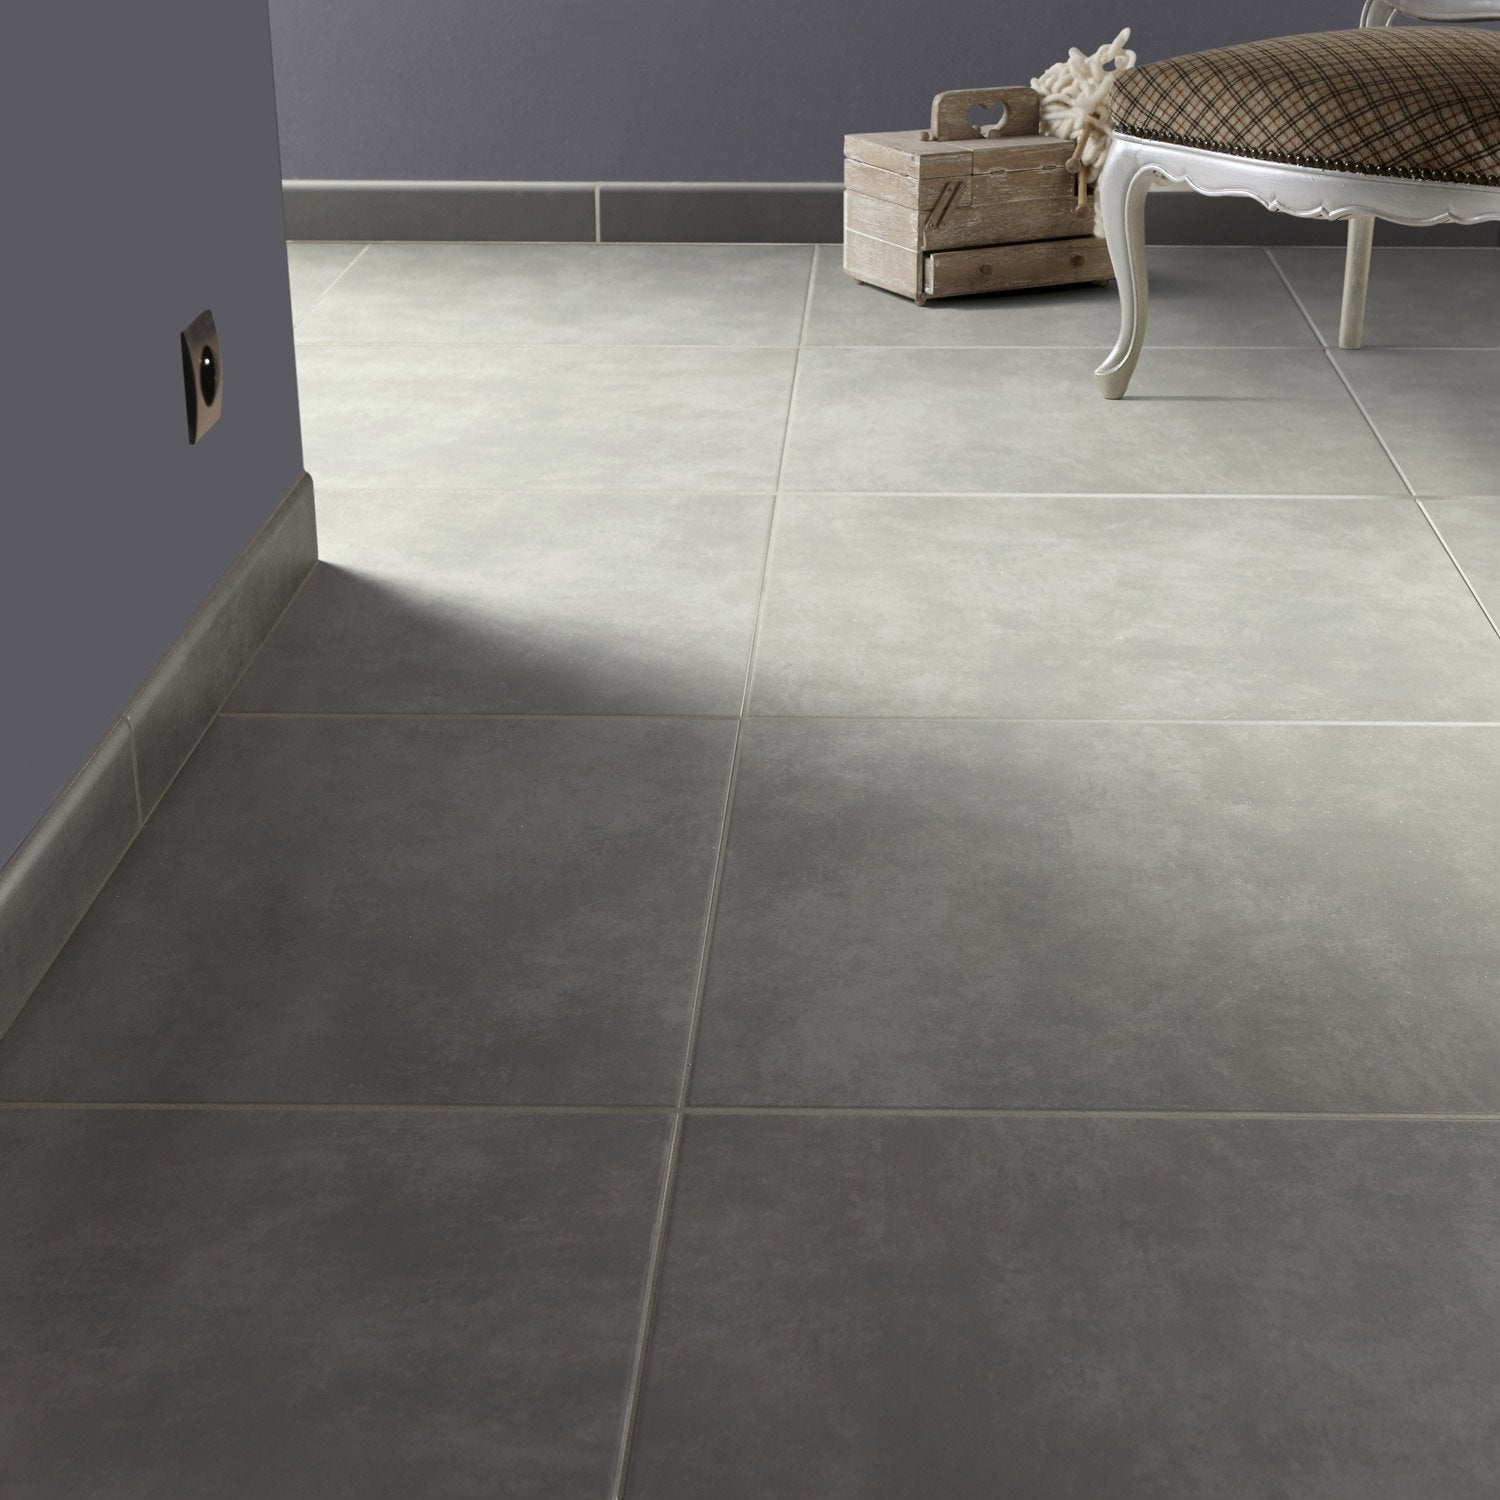 Carrelage sol et mur anthracite effet b ton blackpool for Carrelage interieur gris anthracite